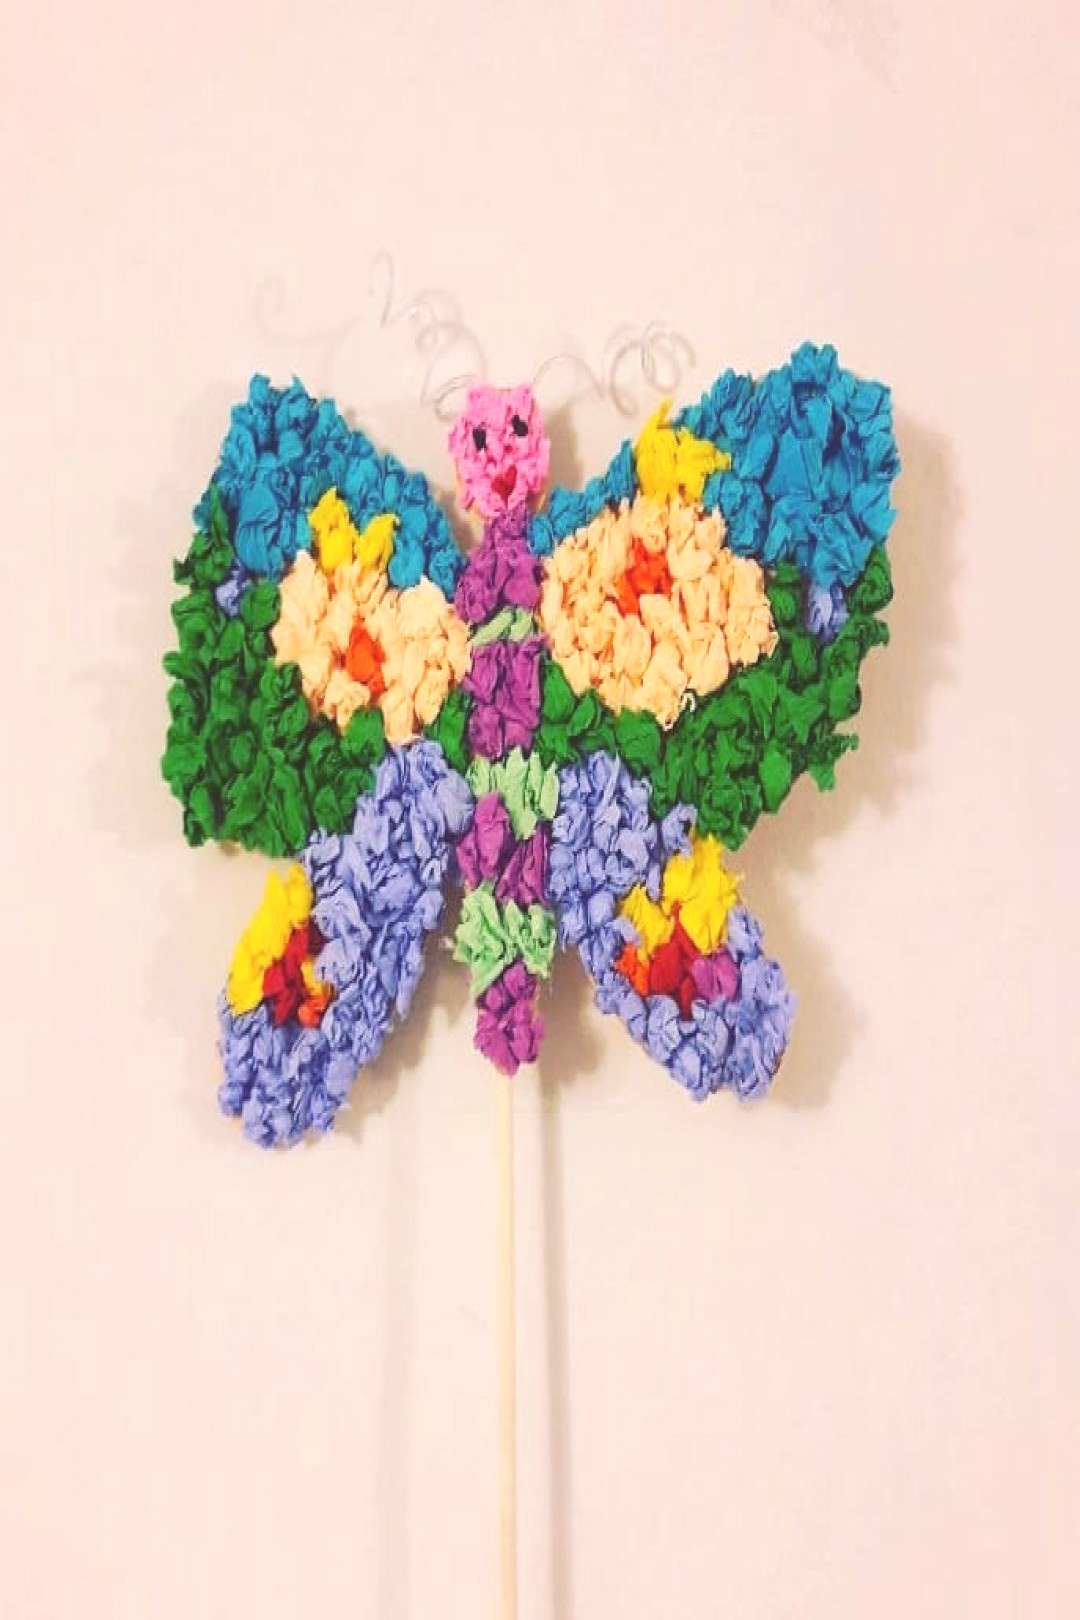 Waiting for spring with this butterfly #crepepaper#prickingcushio